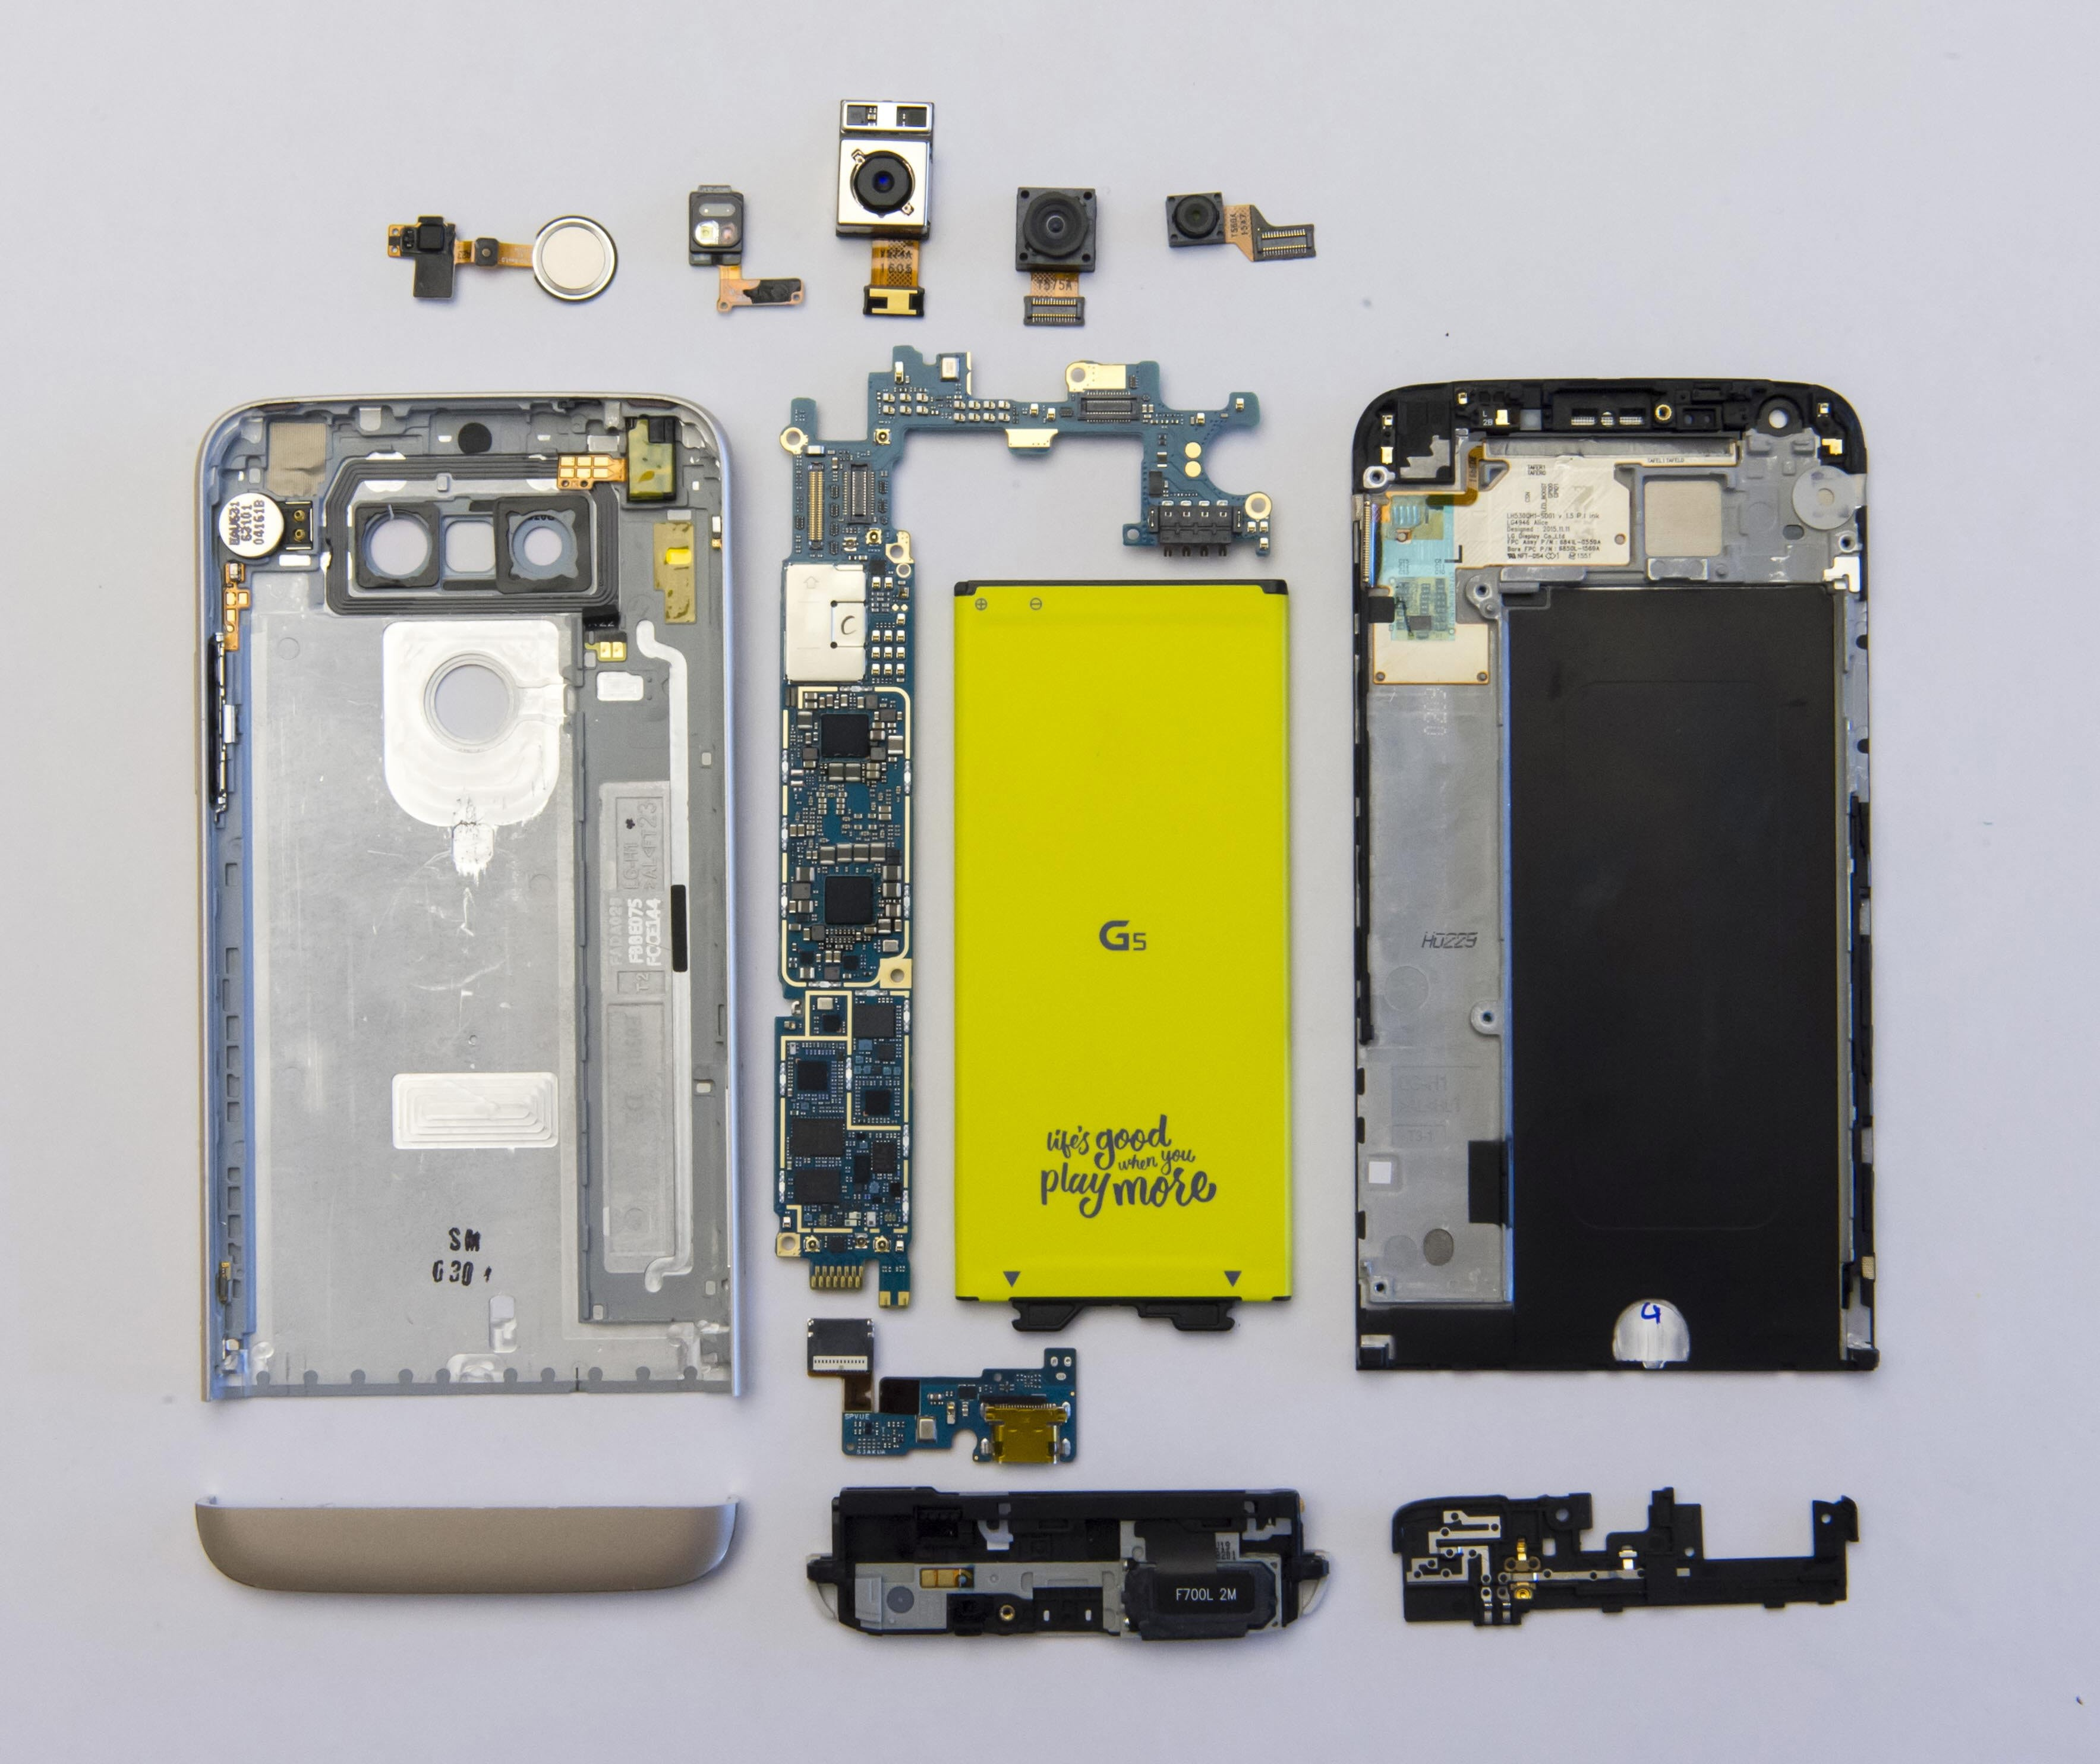 All modular components of LG G5 laid out on flat surface